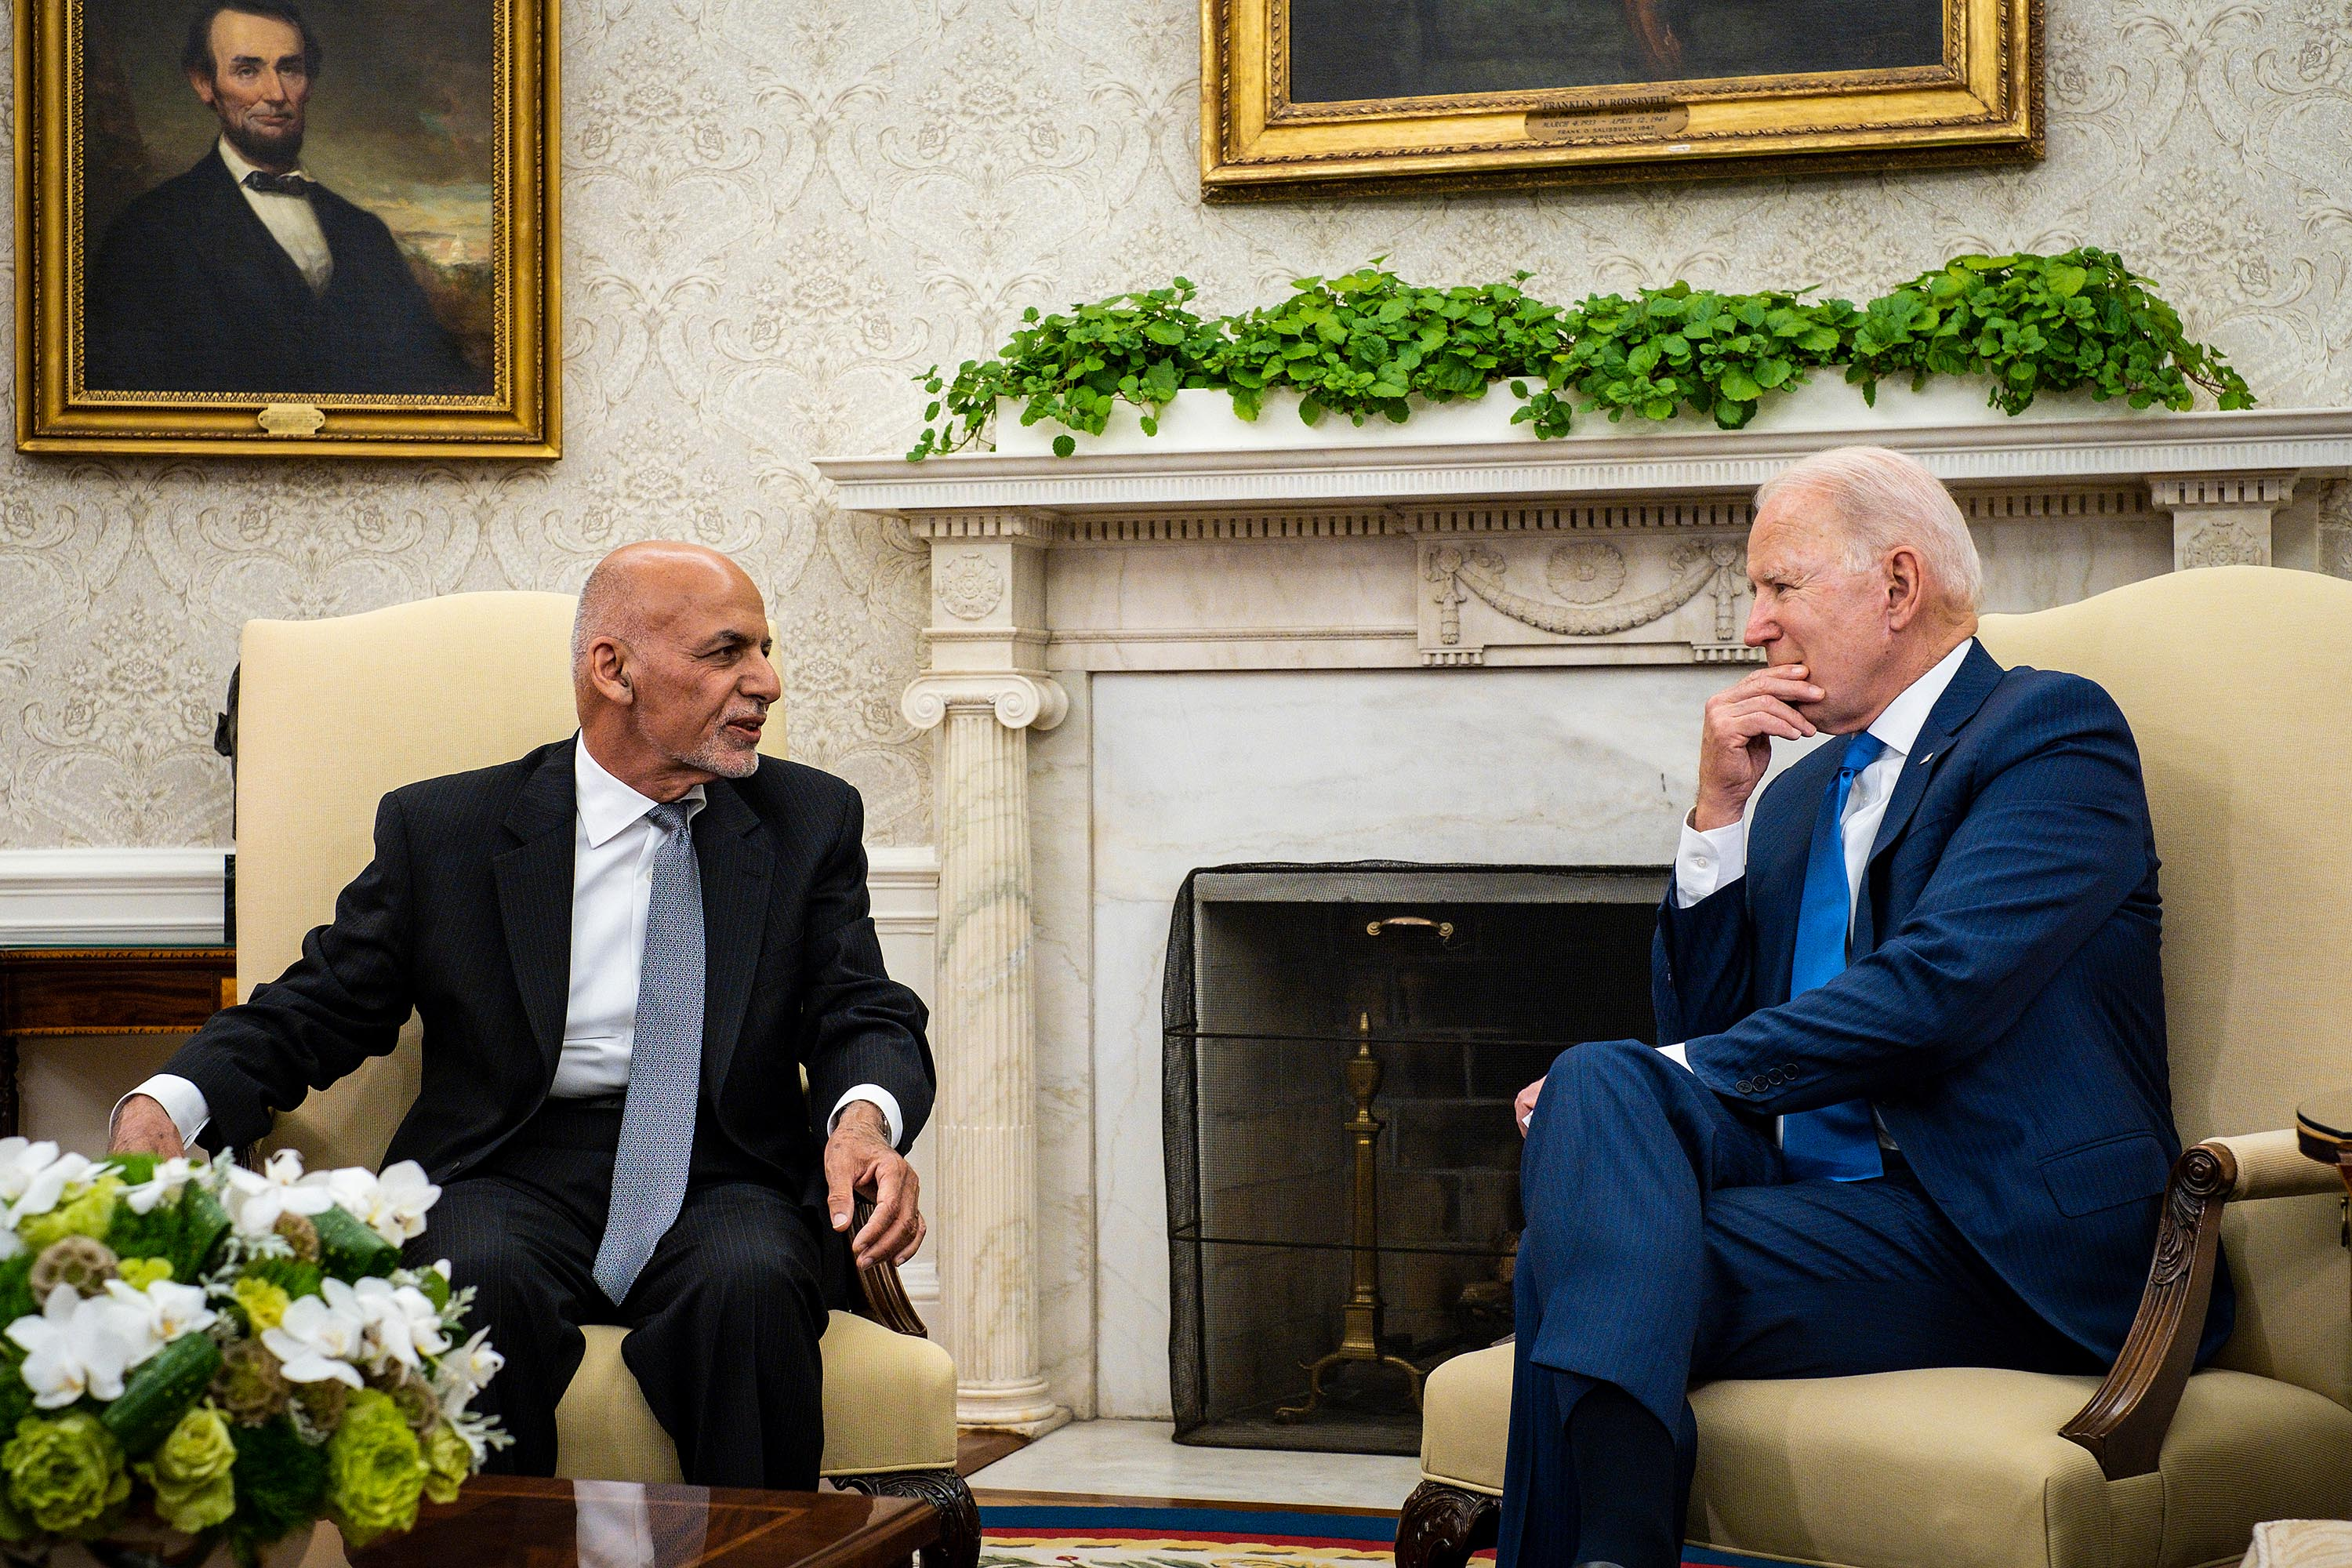 A 'gut decision': Inside Biden's defense of Afghanistan withdrawal amid warnings of country's collapse